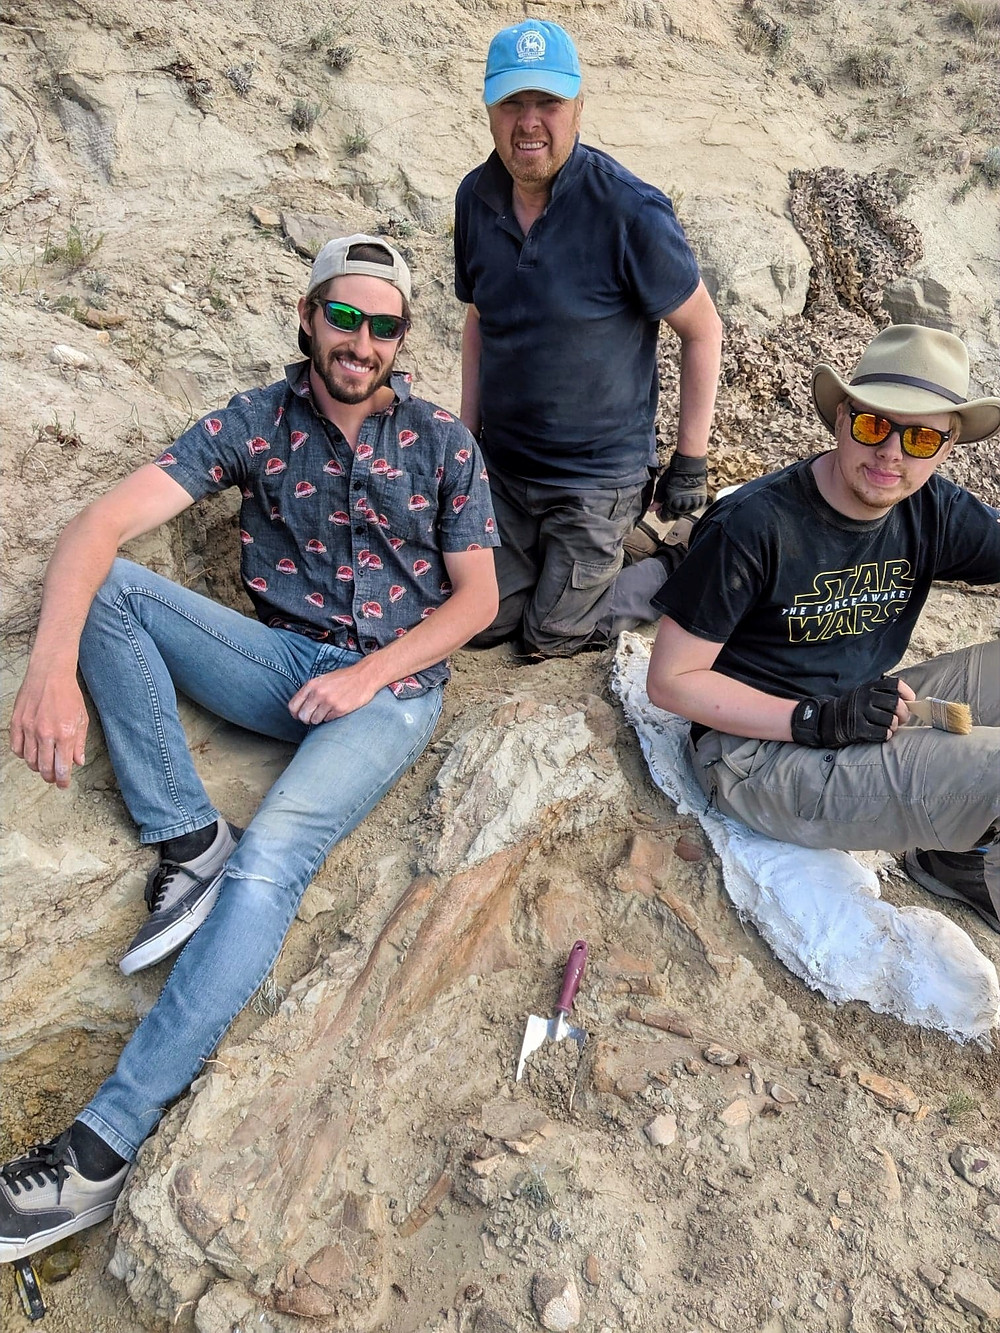 Intern Aaron and two participants pose next to the left femur of a duckbilled dinosaur.